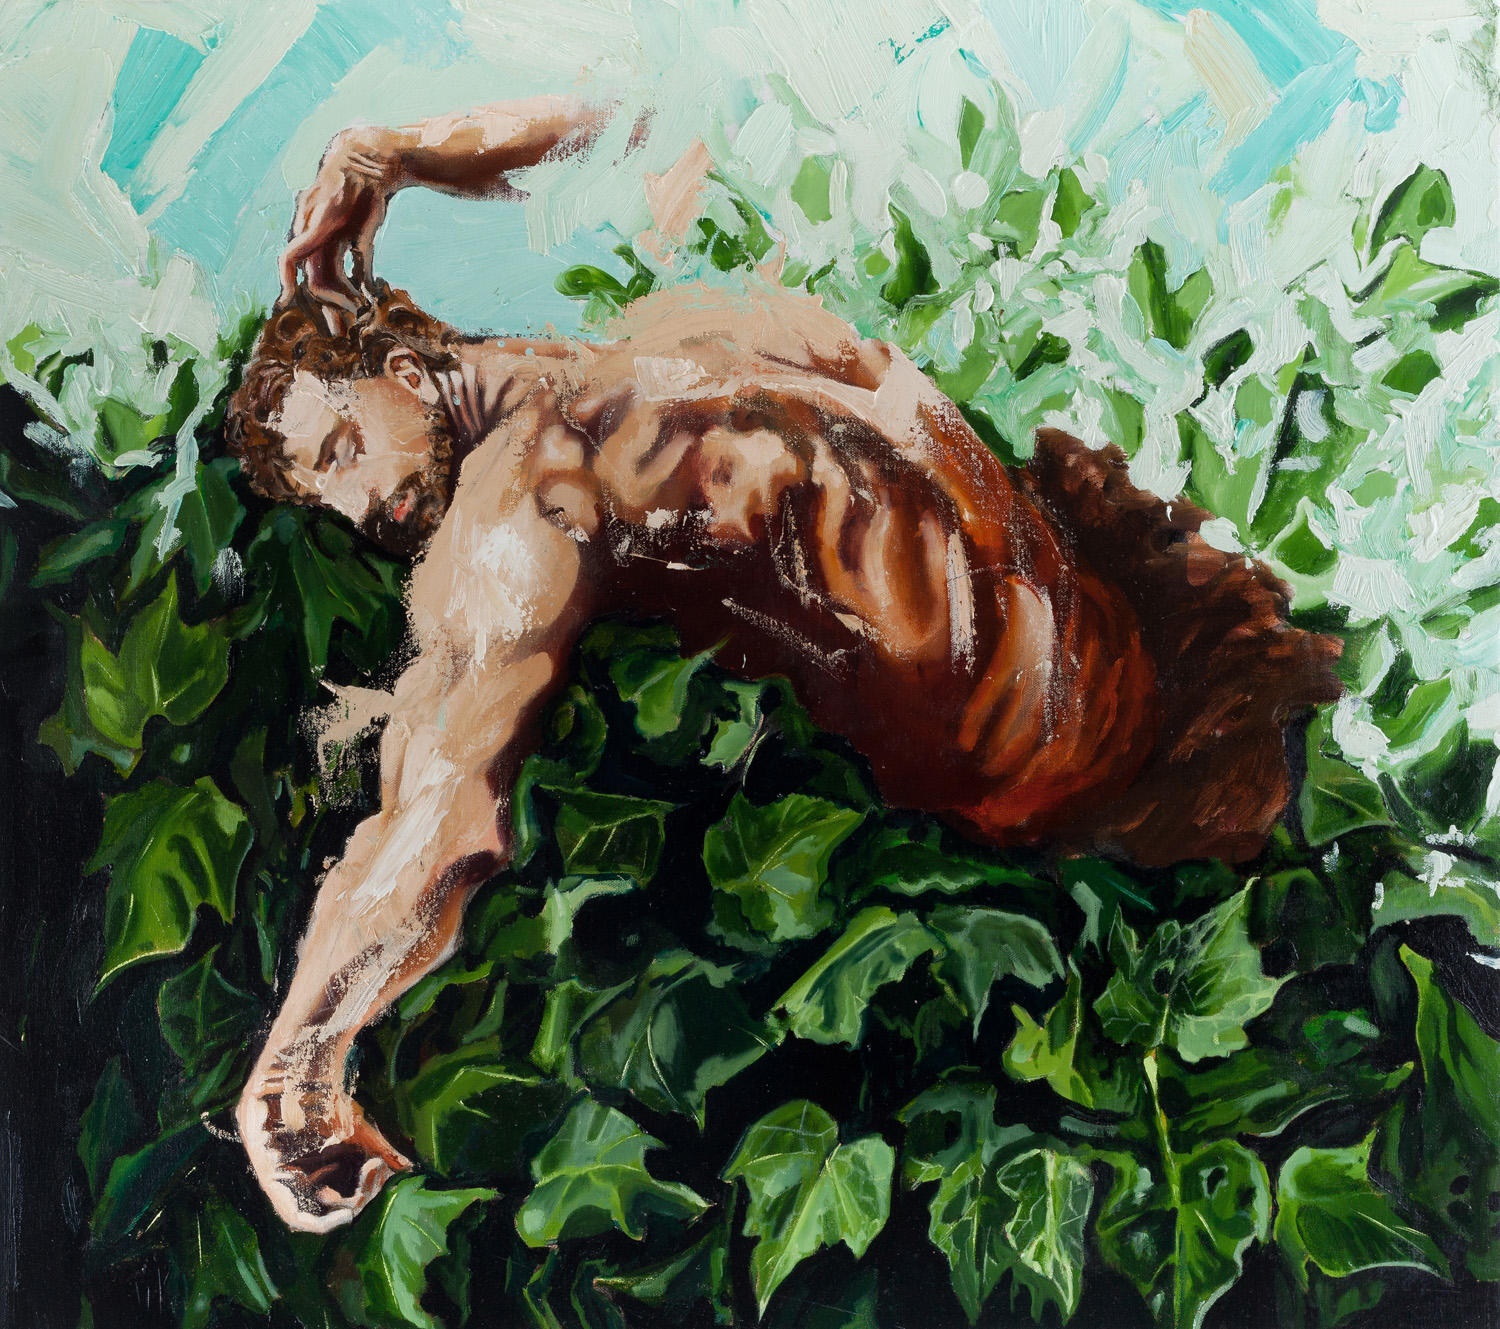 Samaon dreaming in the ivy, Oil on canvas, 90x80 cm, 2014